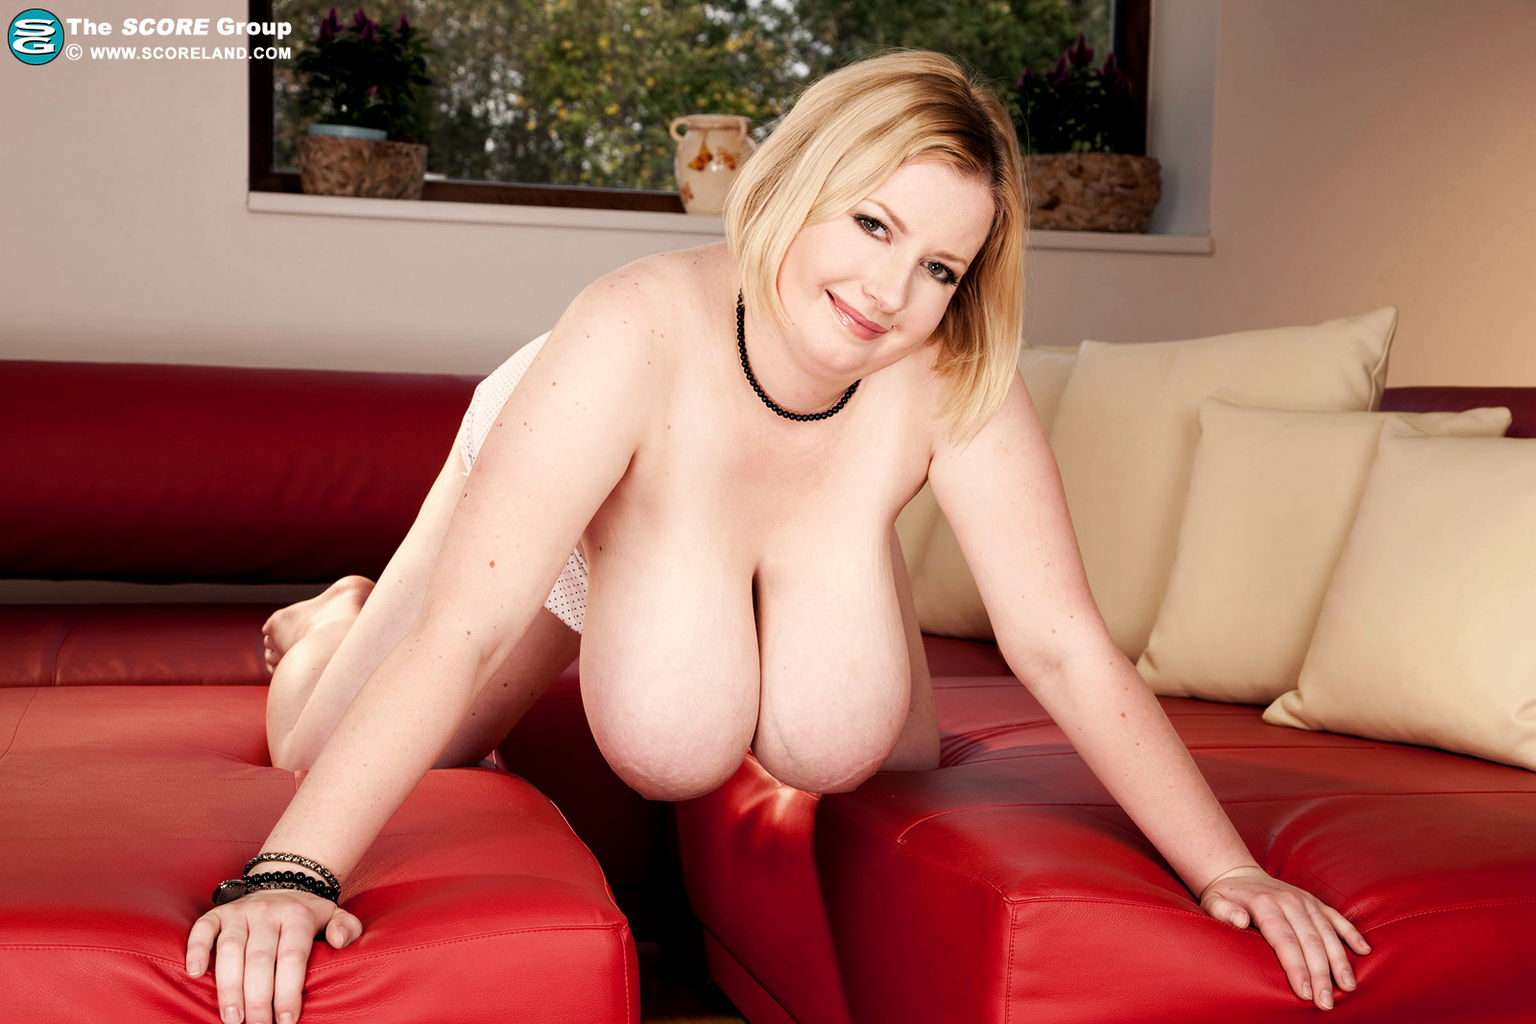 Anna Beck Scoreland Awesome anna beck busty babe 38g - big sexy boobs